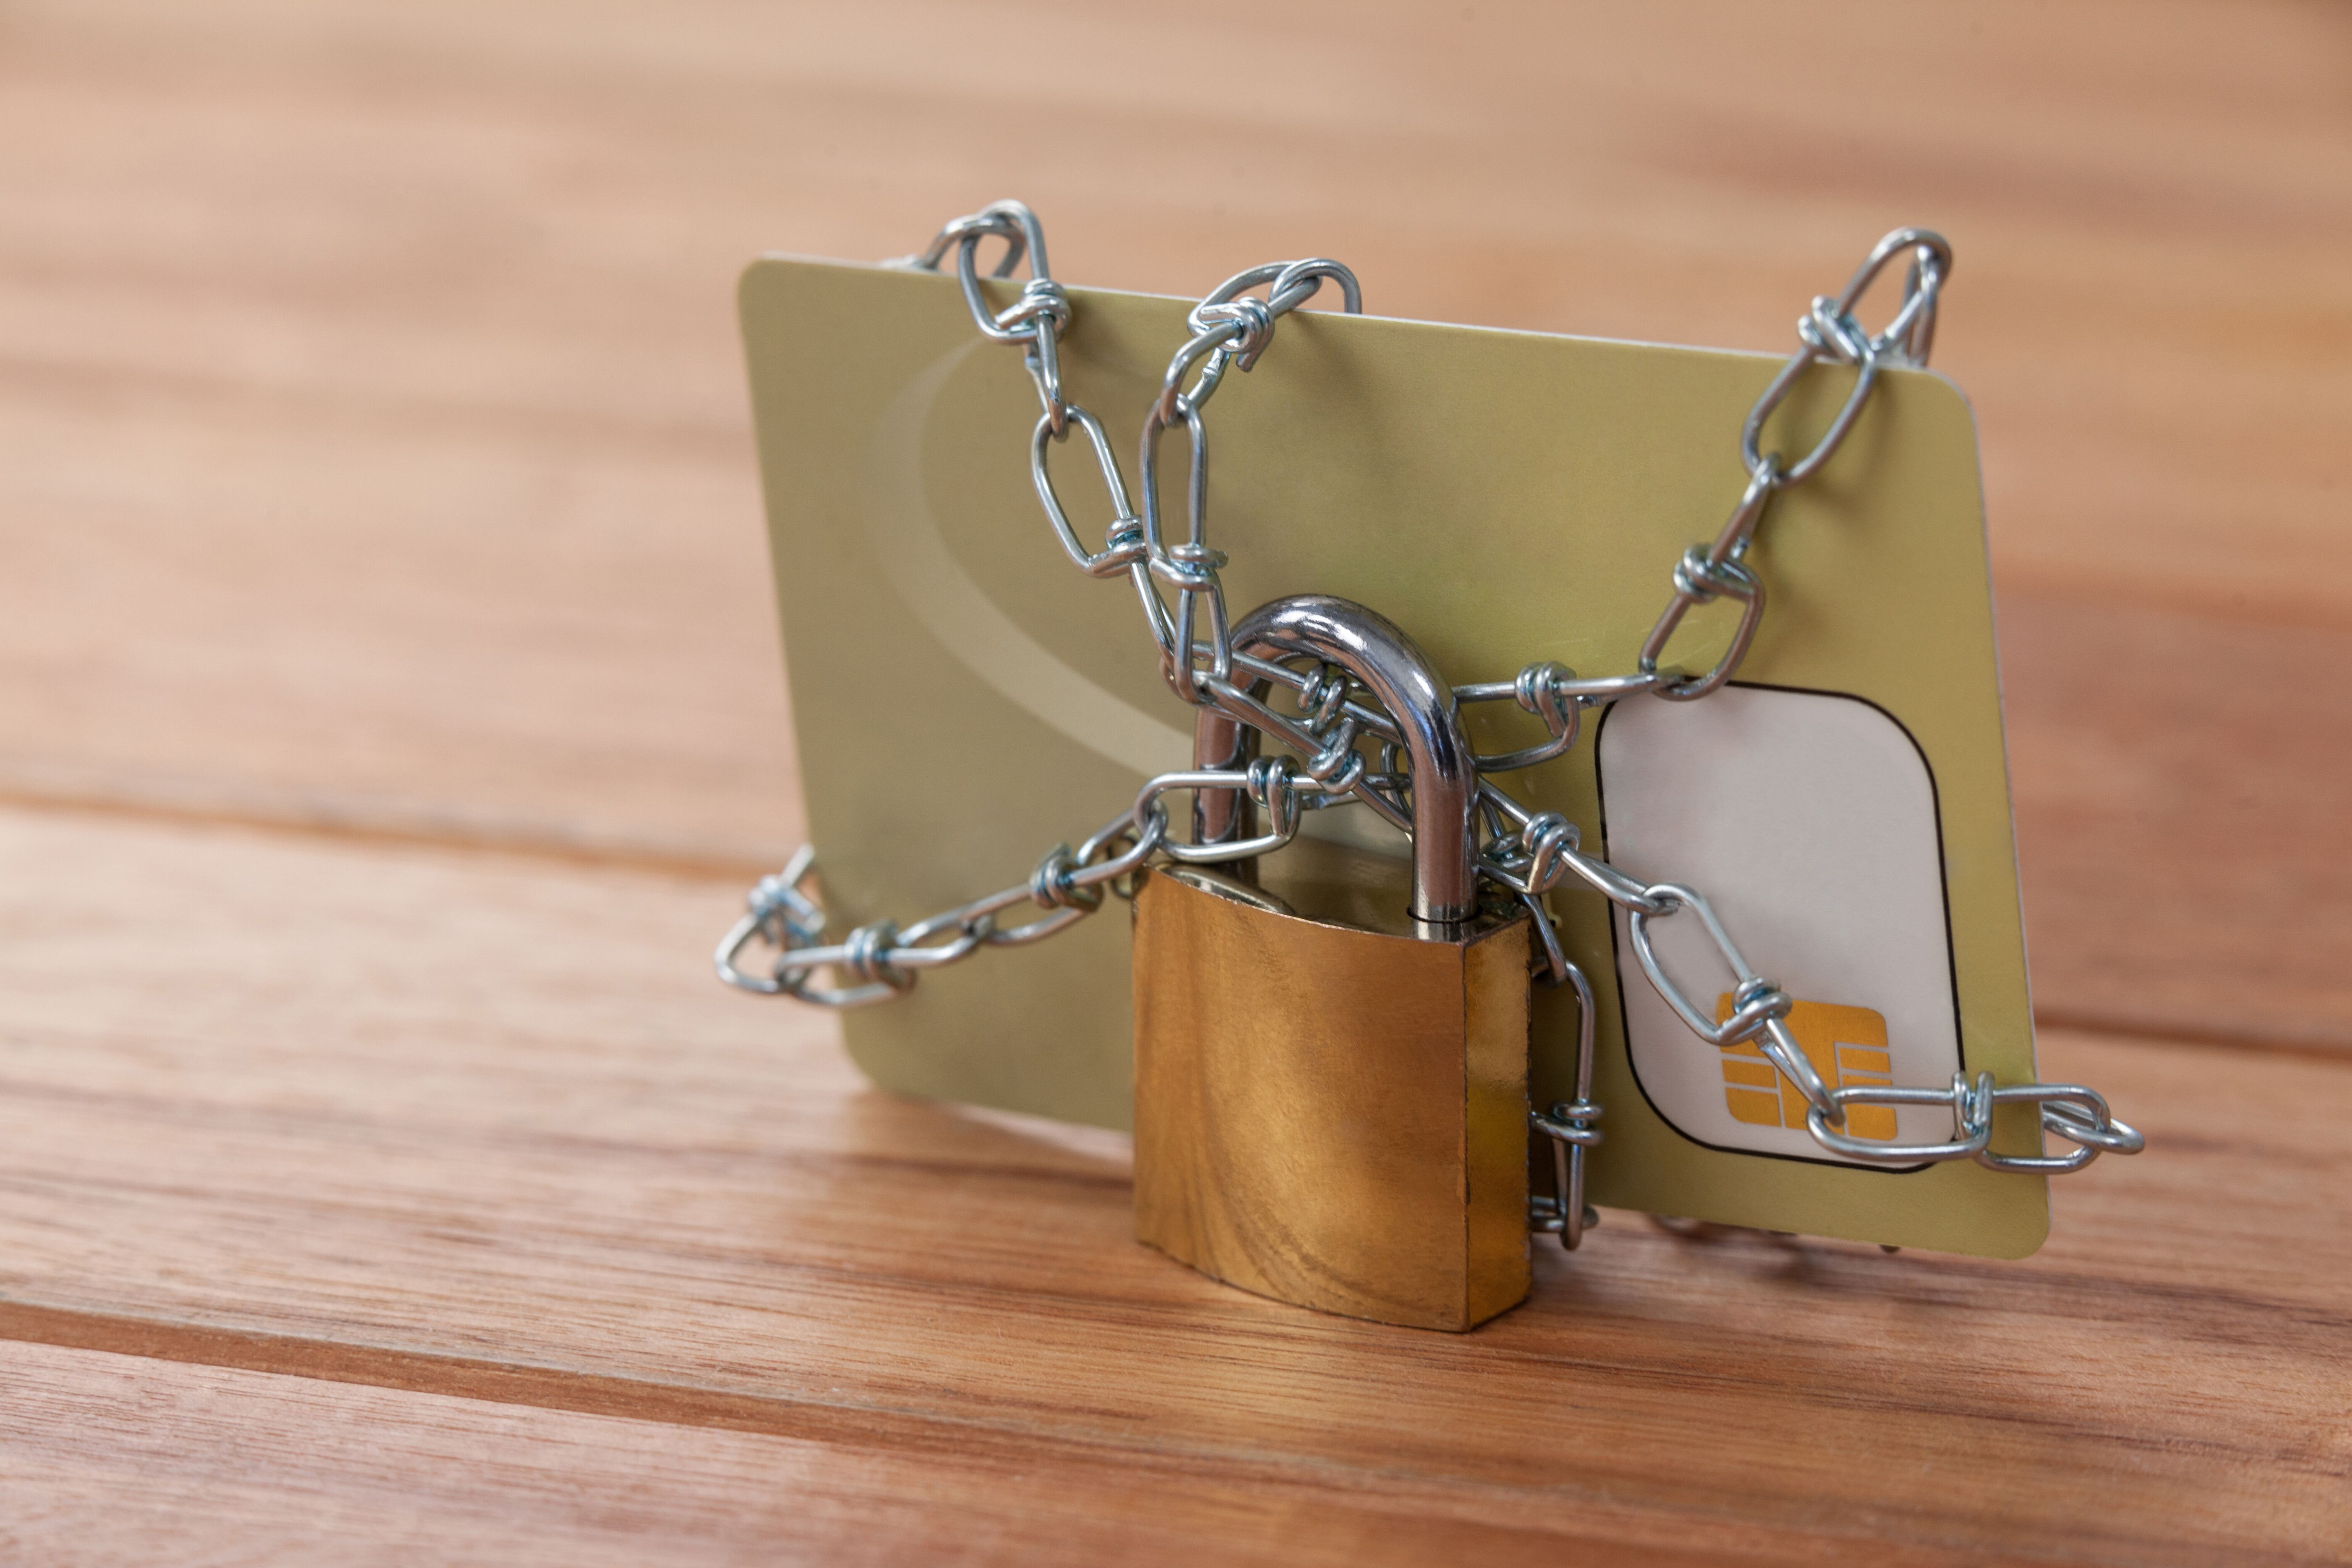 Lock and chain on credit card